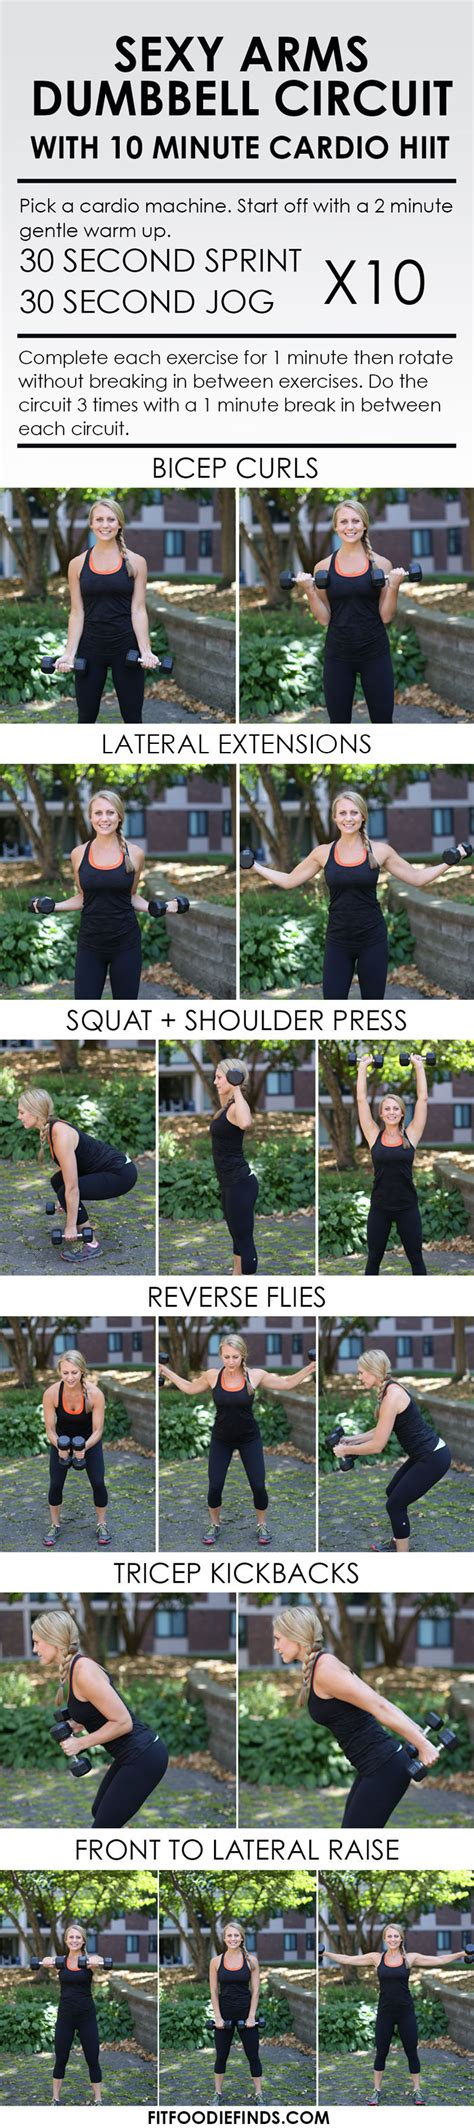 10 minute arm workout healthcom sexy arms circuit workout with cardio hiit